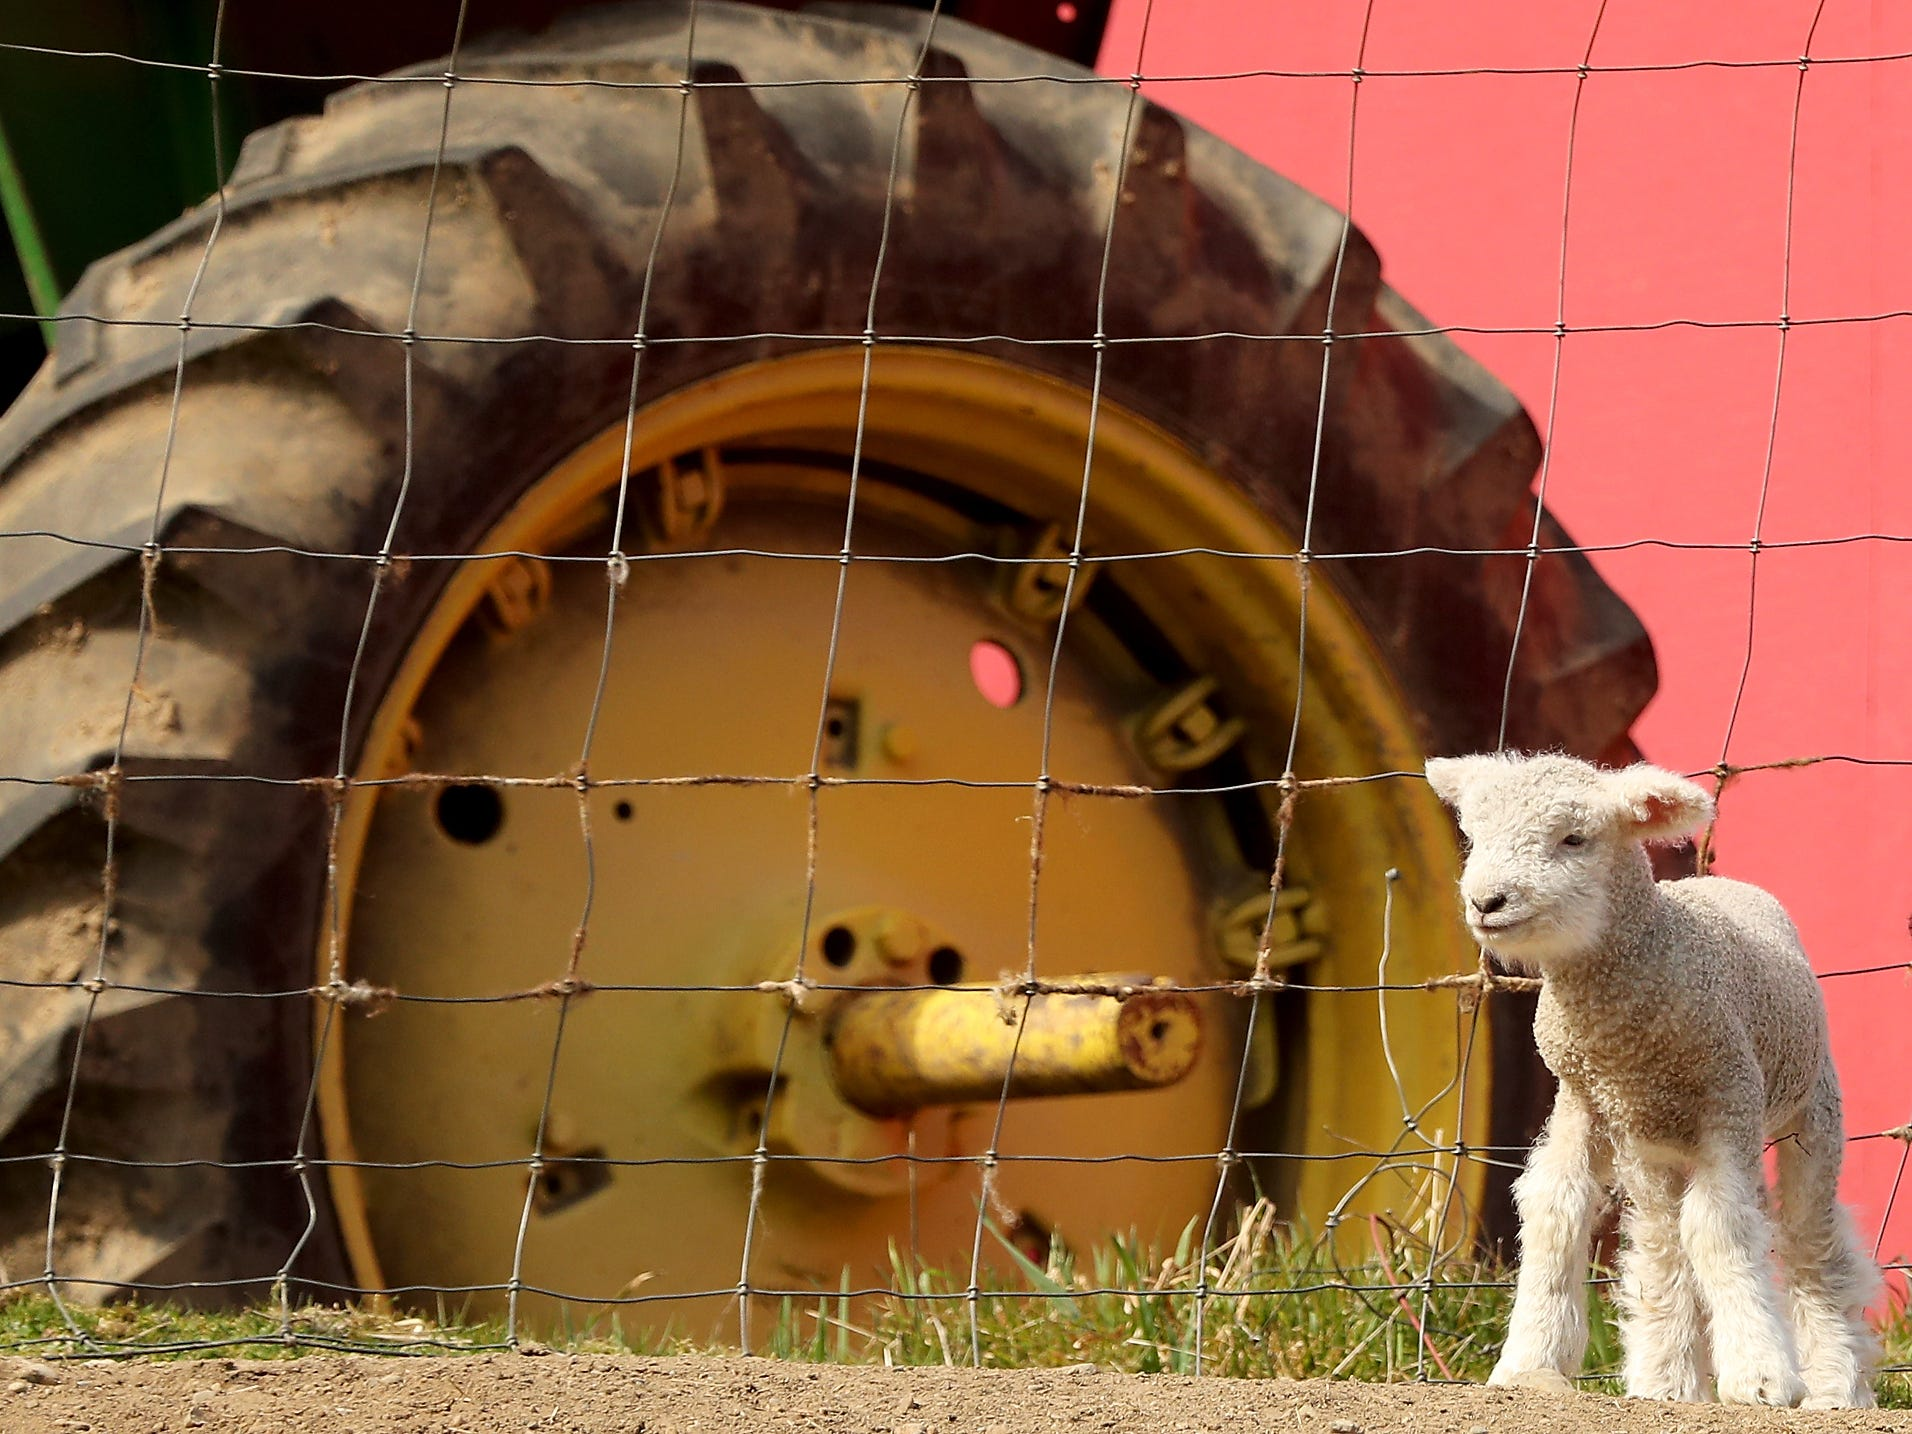 A lamb soaks up some sunshine in front of a tractor wheel  at Scandia Creek Farm in Poulsbo on March 22, 2019.